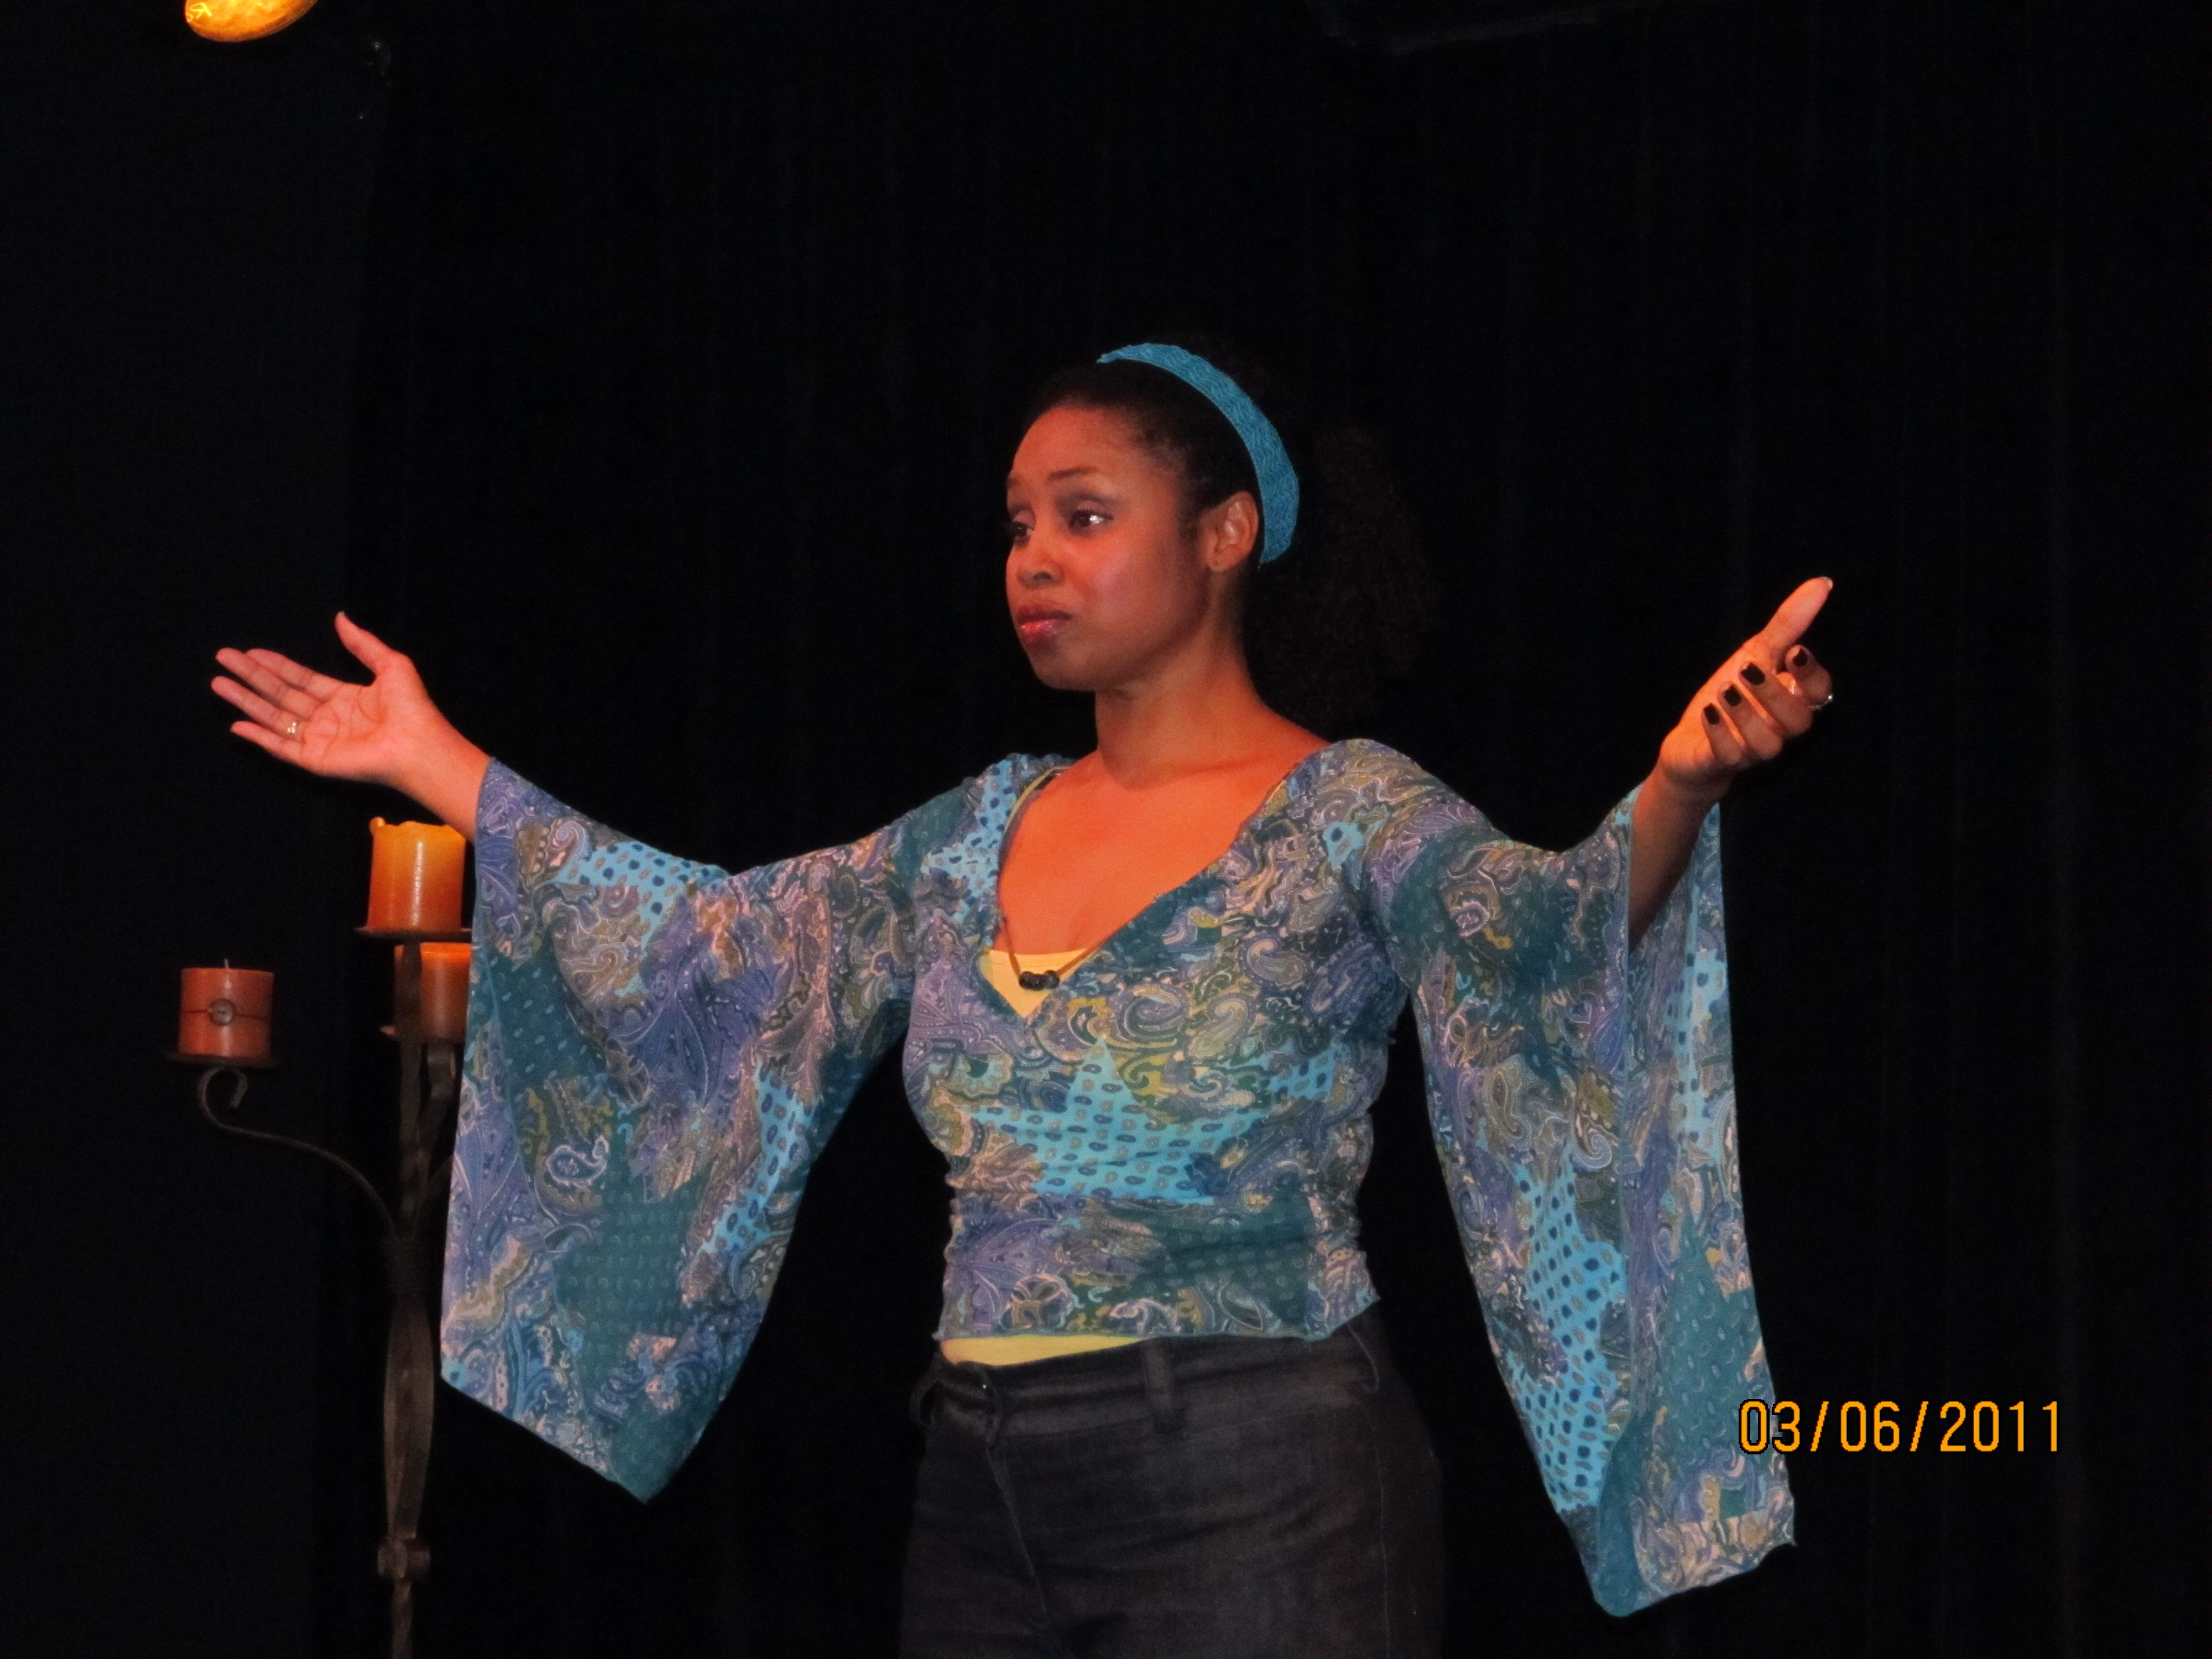 """From The Best of the Fest Benefit Performer: Juliette Jeffers during her solo work, """"ChocolateMatch.com"""""""